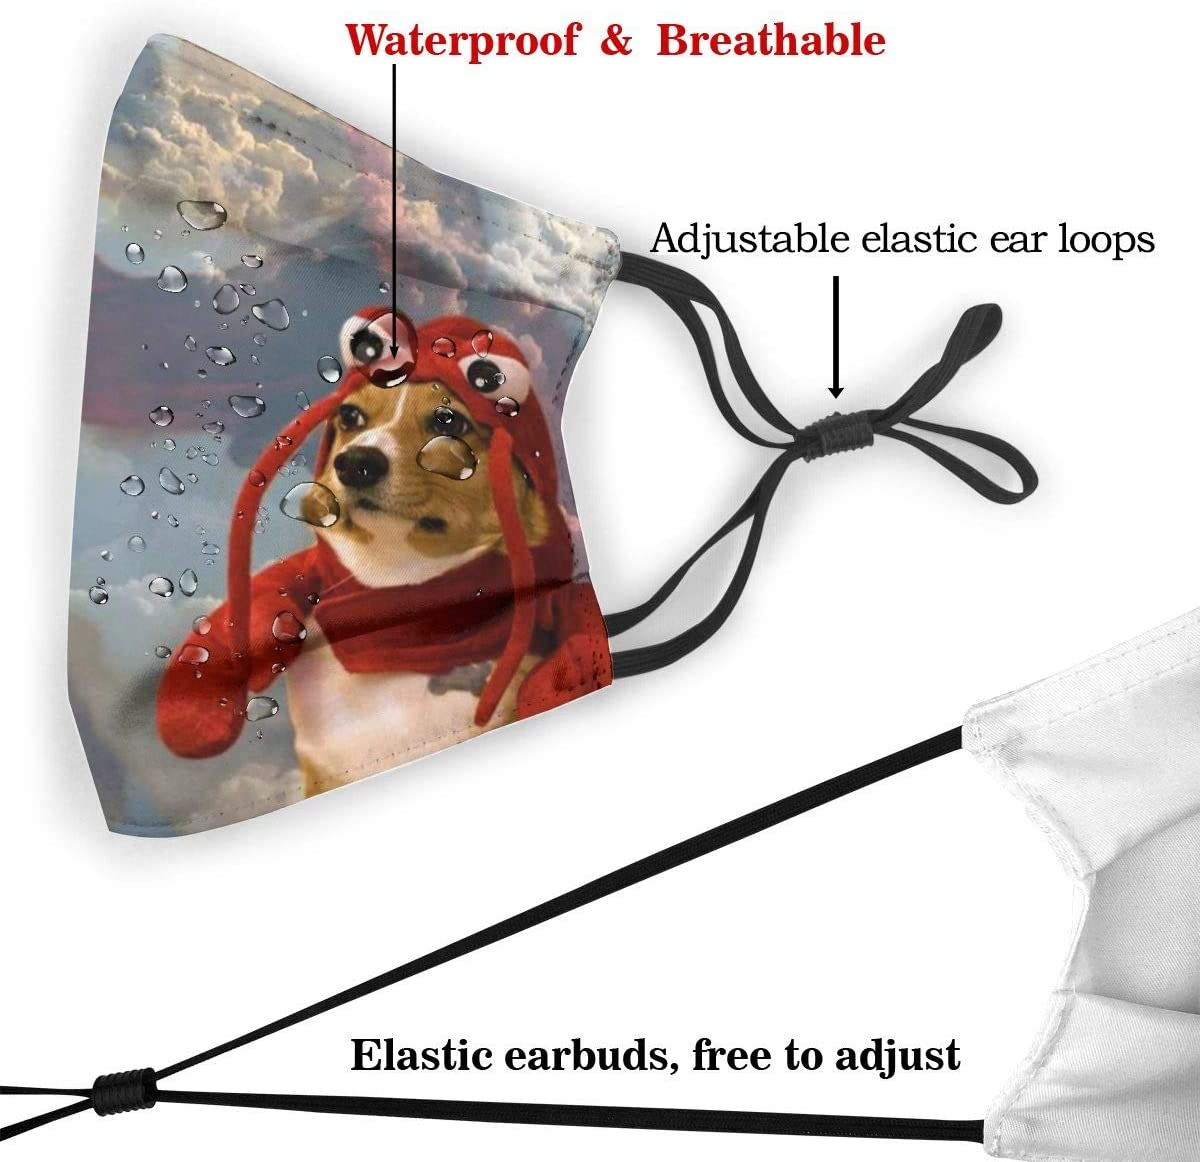 Airedale Terrier Christmas Dog Men Insert Face Cloths Replaceable Protective Cover With Adjustable Earloop Breathable Filter Face Cover